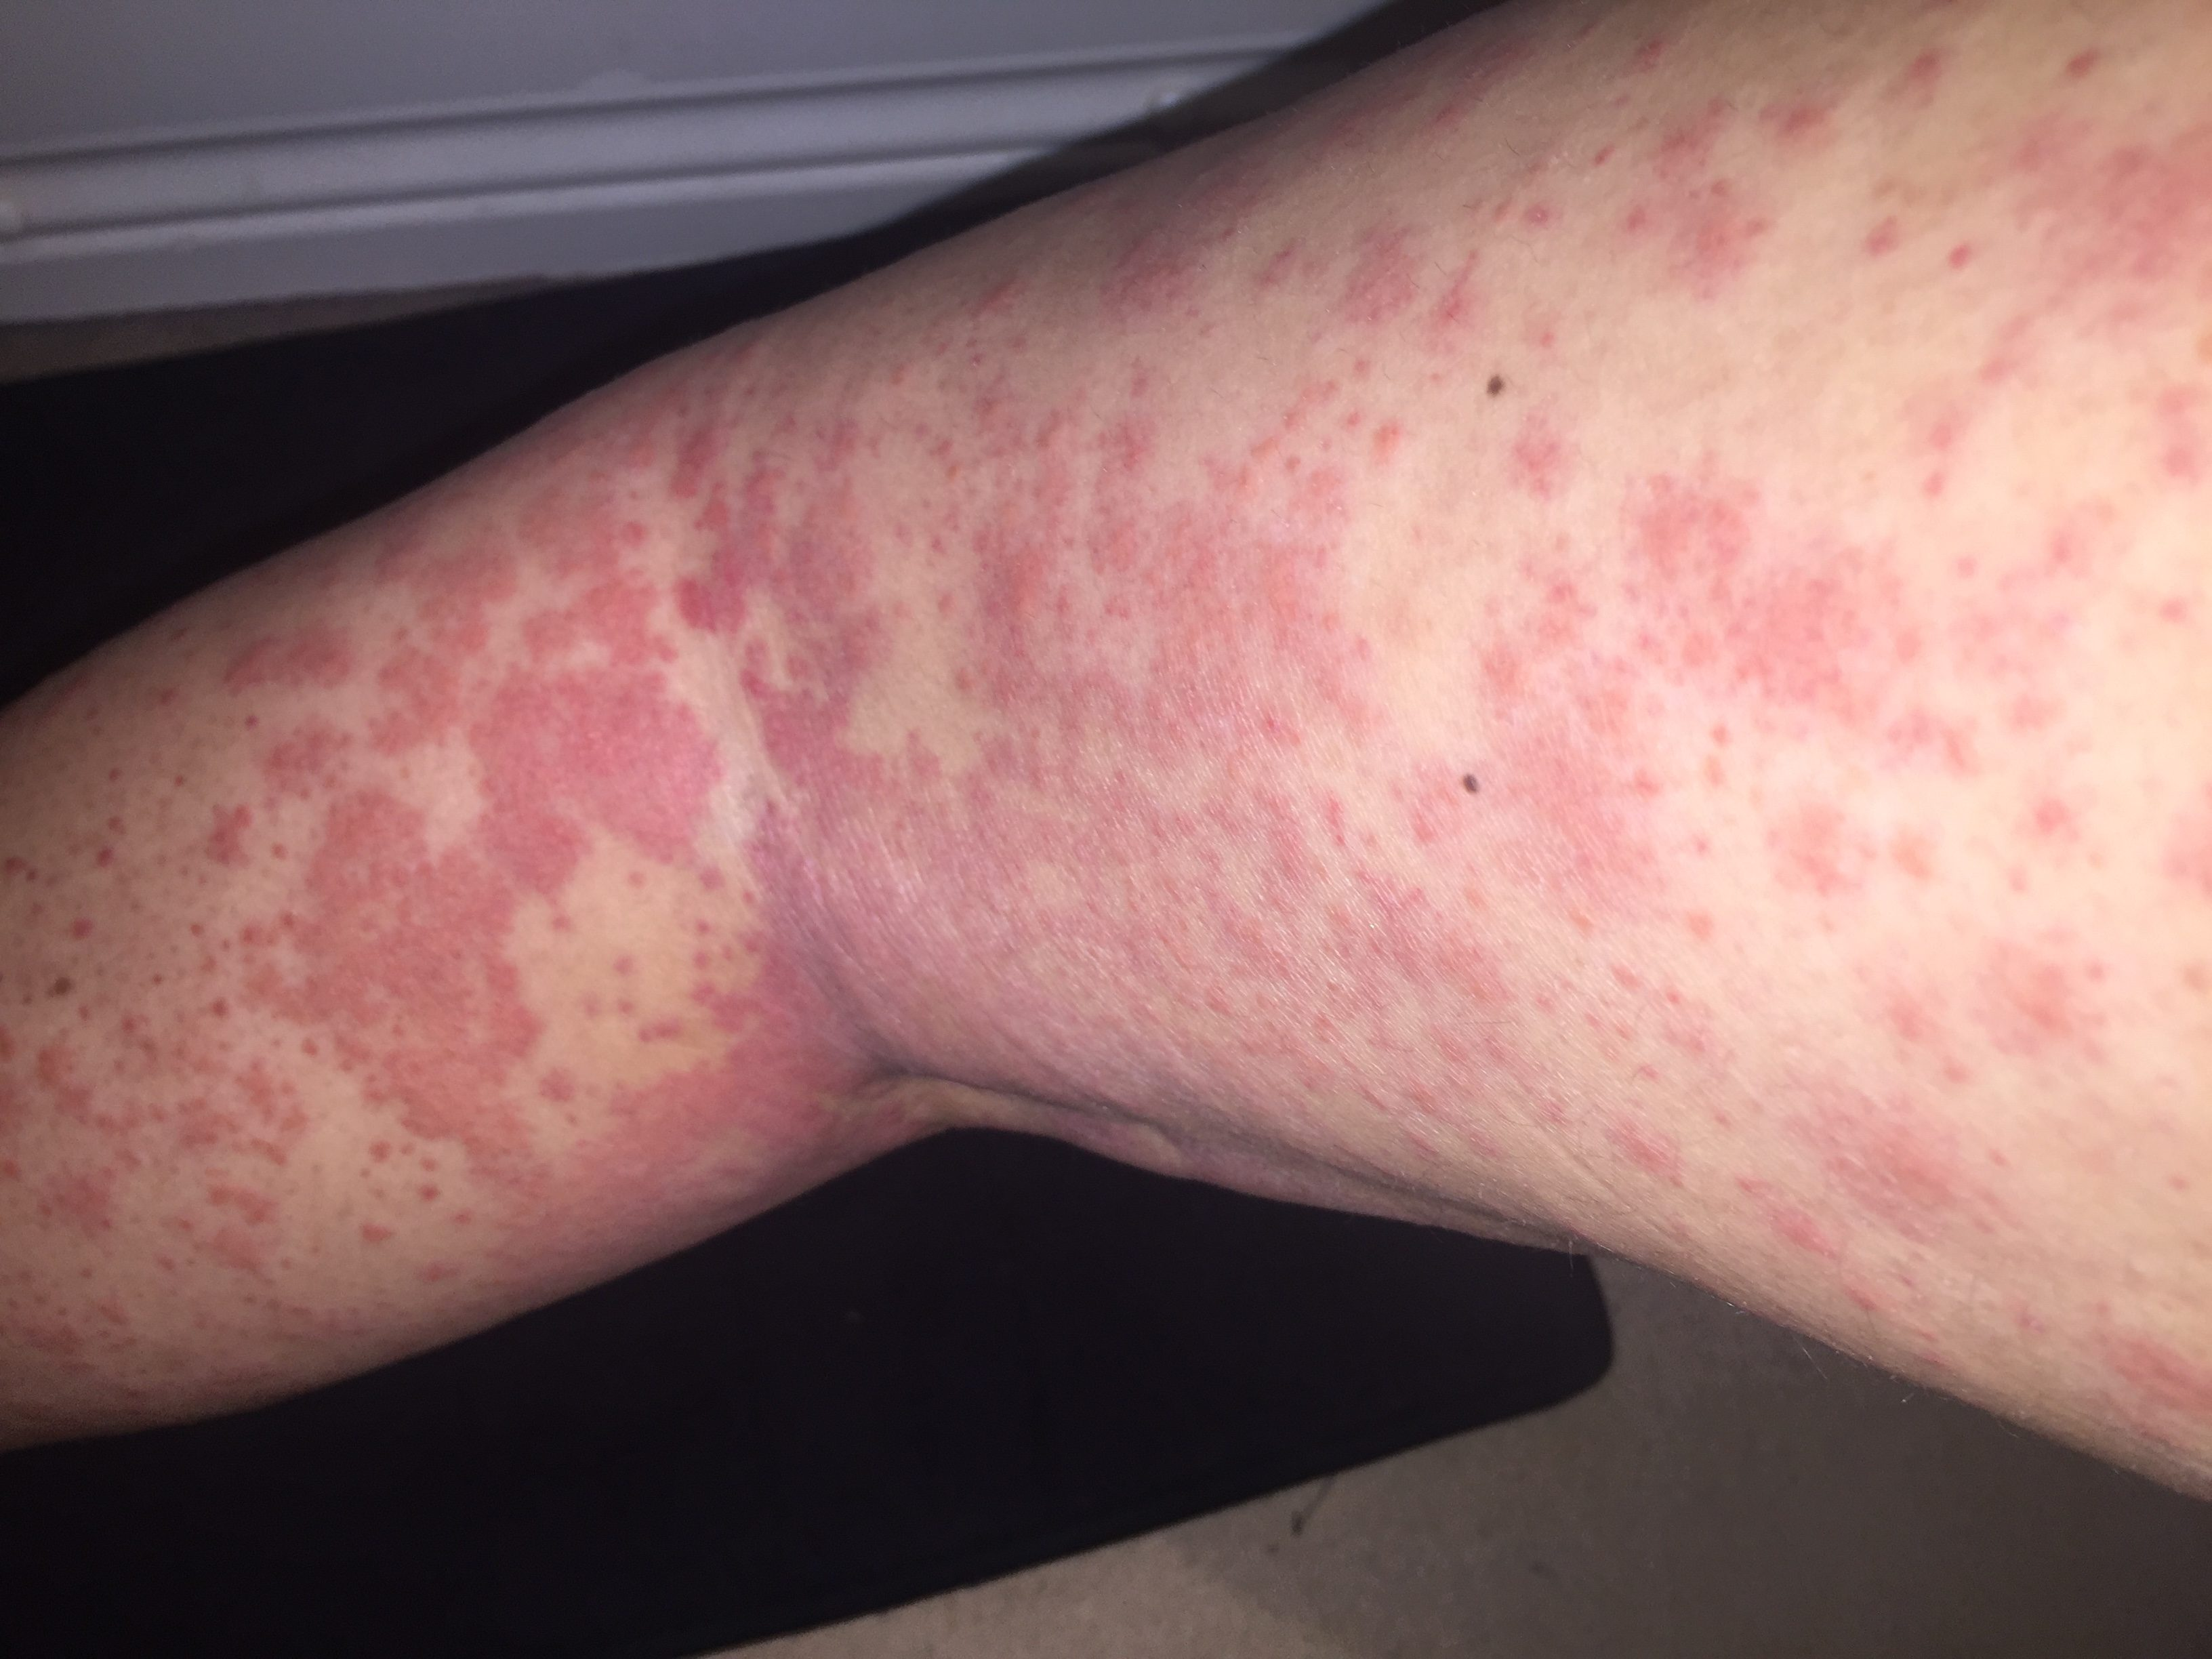 Bizarre Rash Leads To Cancer Diagnosis For Young Woman